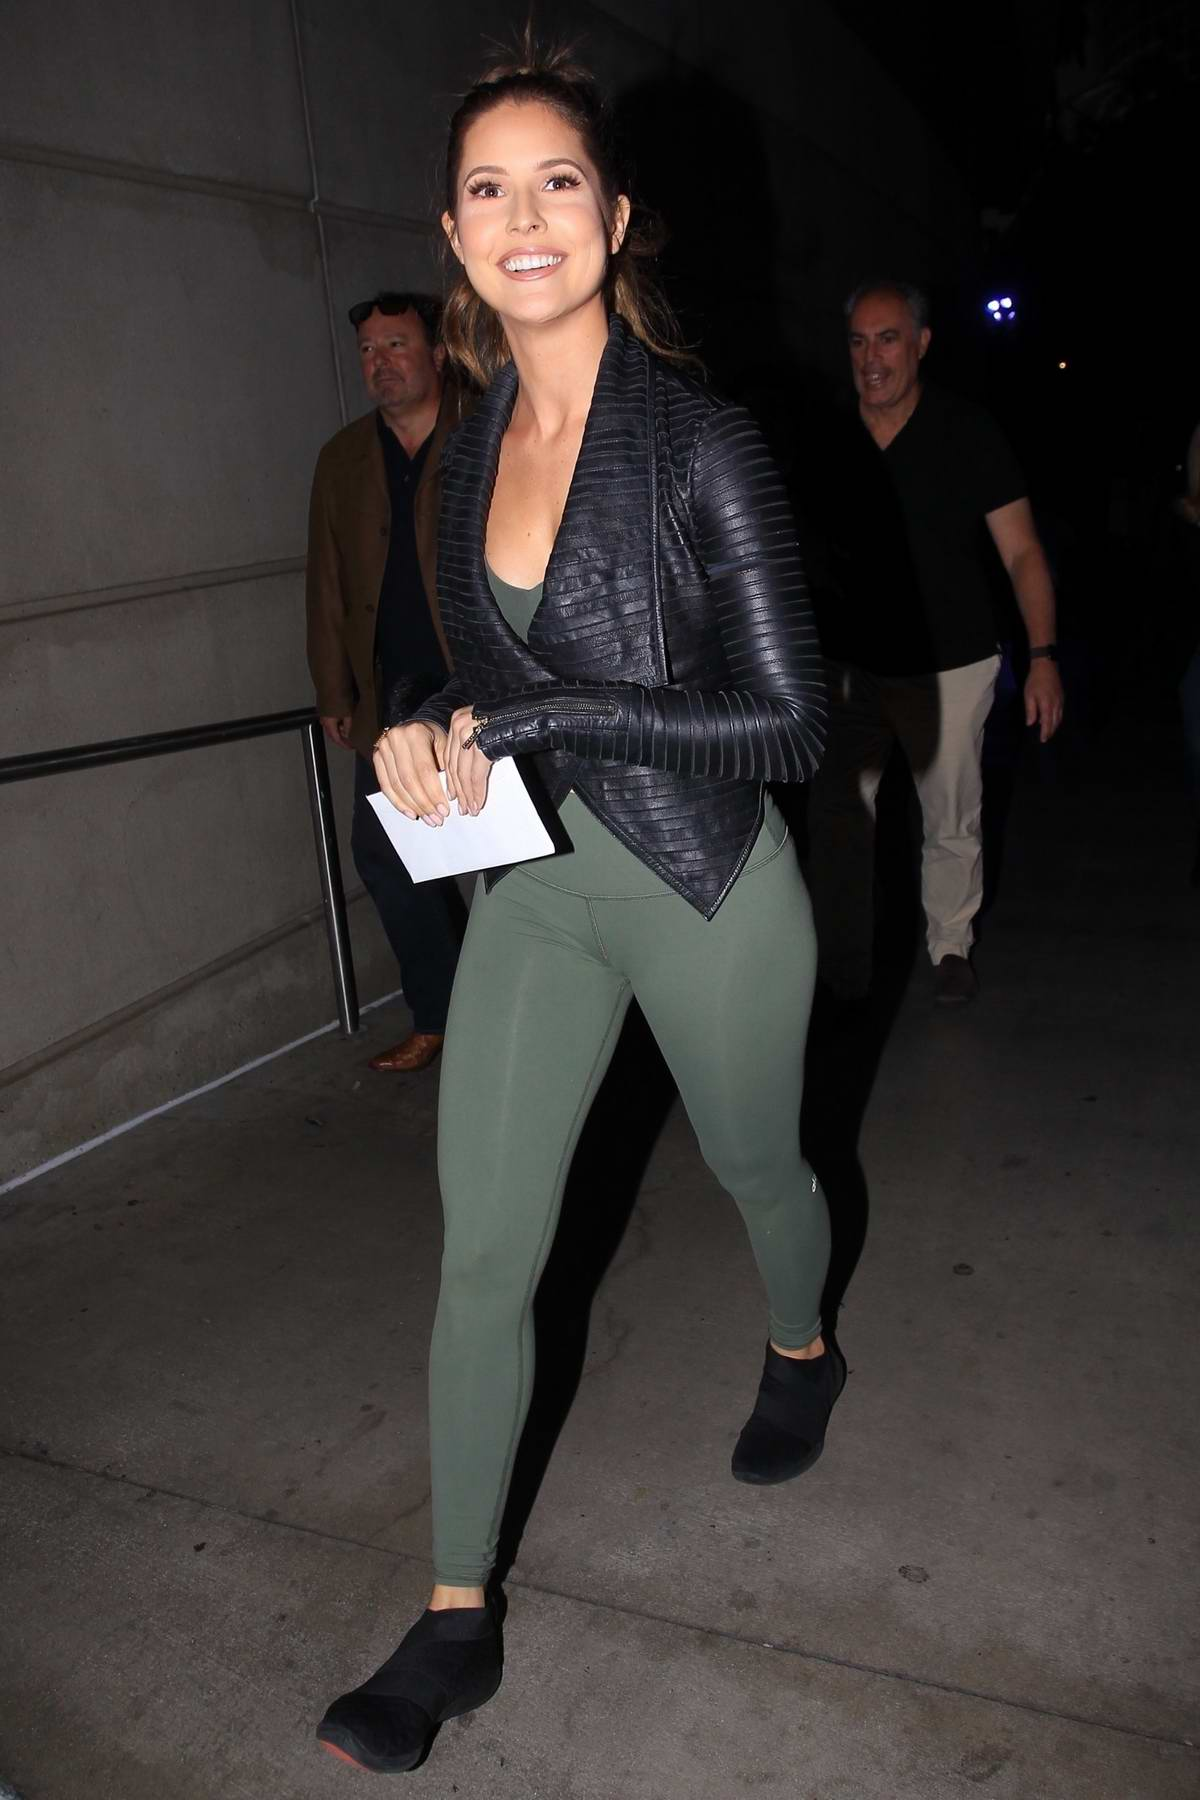 Amanda Cerny spotted in a leather jacket and green leggings as she heads to the Staples Center in Los Angeles